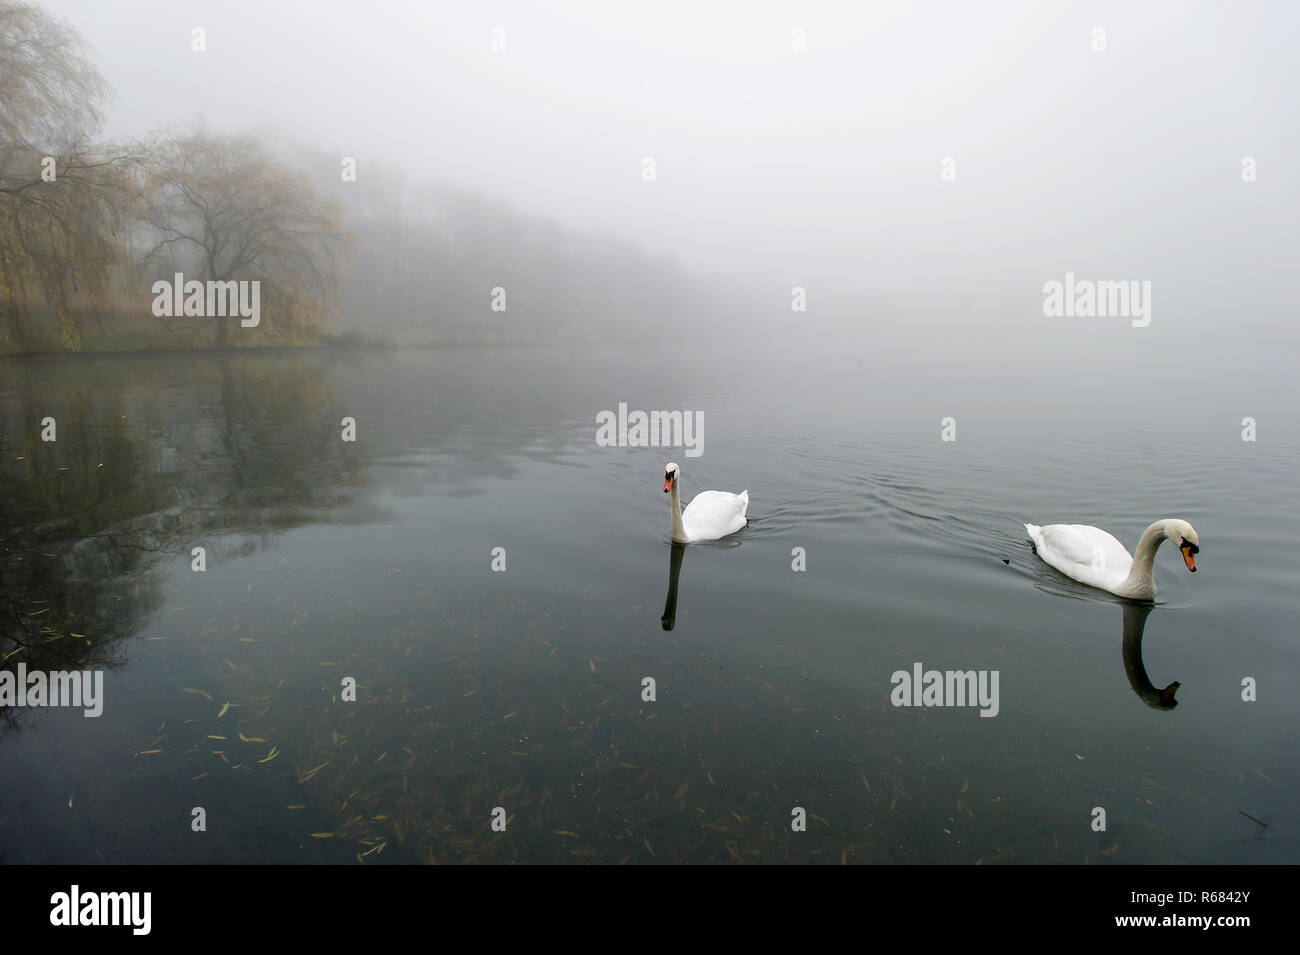 Bolton, Lancashire. 4th Dec 2018. UK Weather: Atmospheric misty scenes at Moses Gate Country Park, Bolton, Lancashire. Freezing temperatures overnight cause a widespread lingering fog over the North West of the country. Picture by Paul Heyes, Tuesday December 04, 2018. Credit: Paul Heyes/Alamy Live News - Stock Image